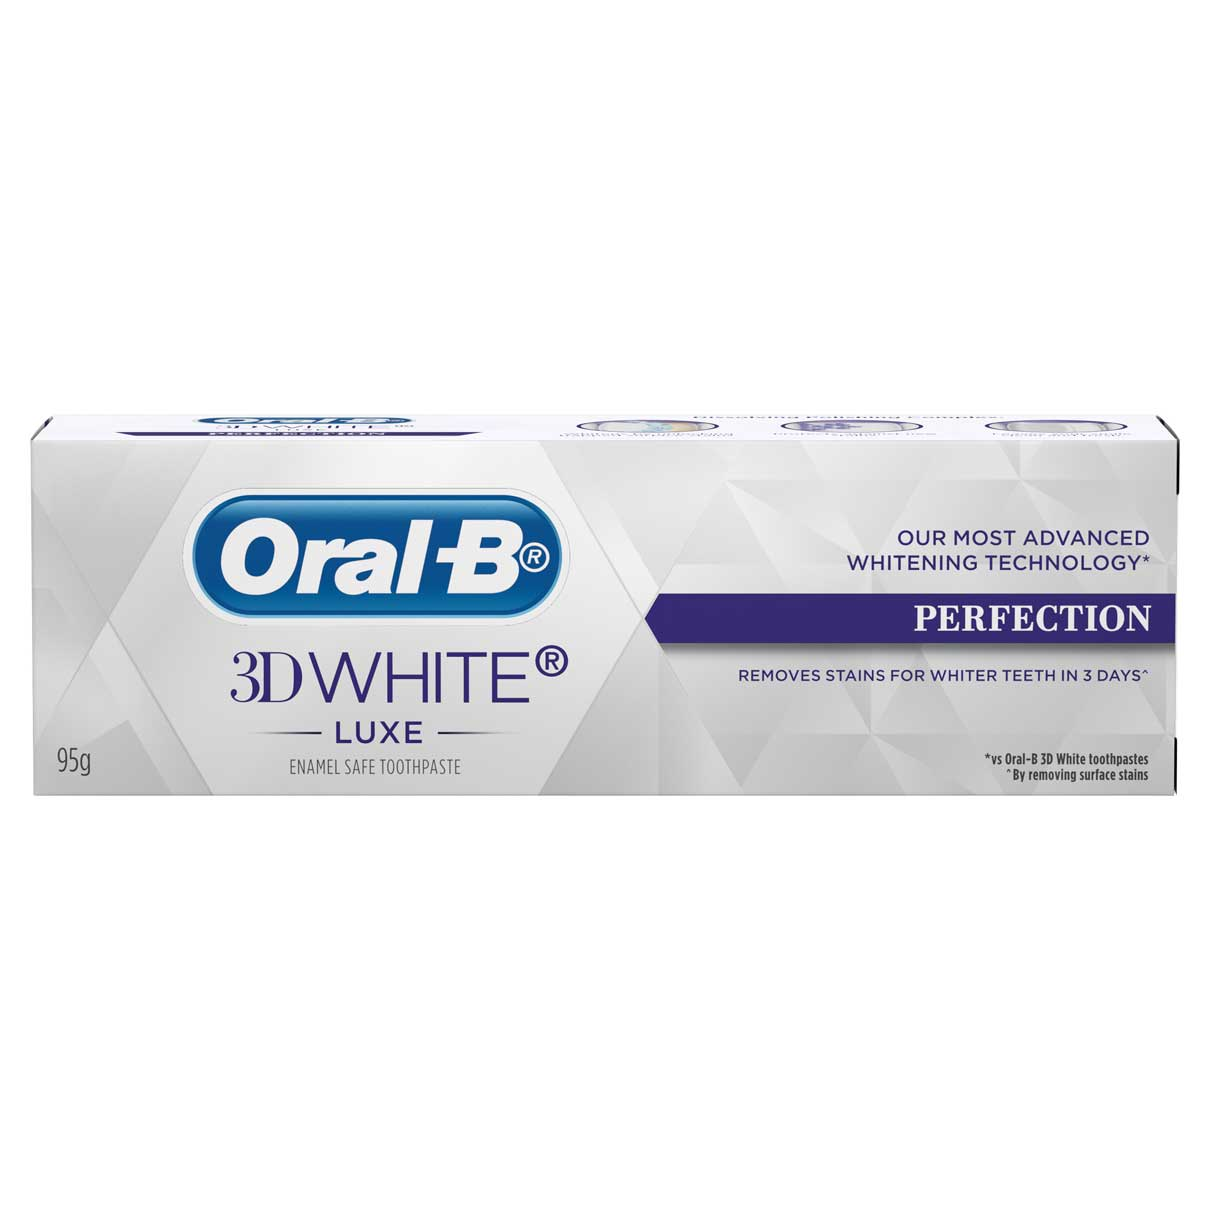 Oral-B 3D White Perfection Carton Horizontal FOP